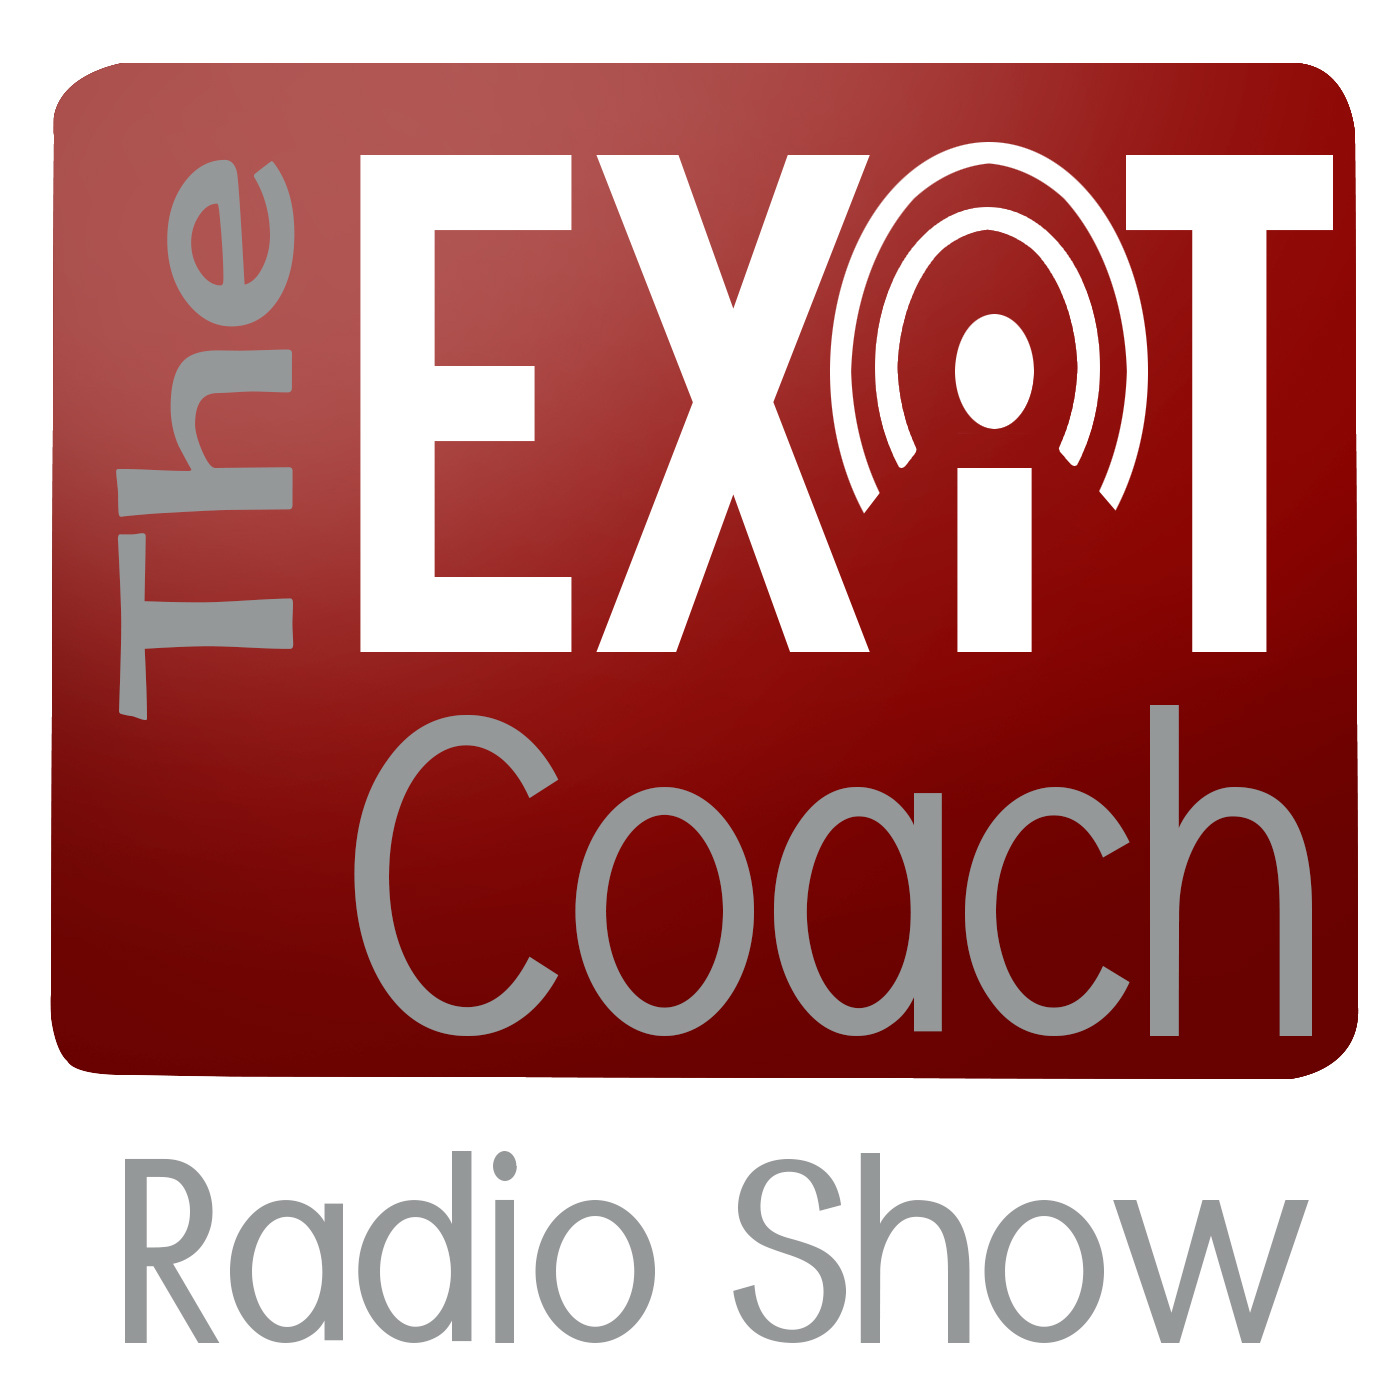 Carl-Gould-The-Exit-Radio-Show